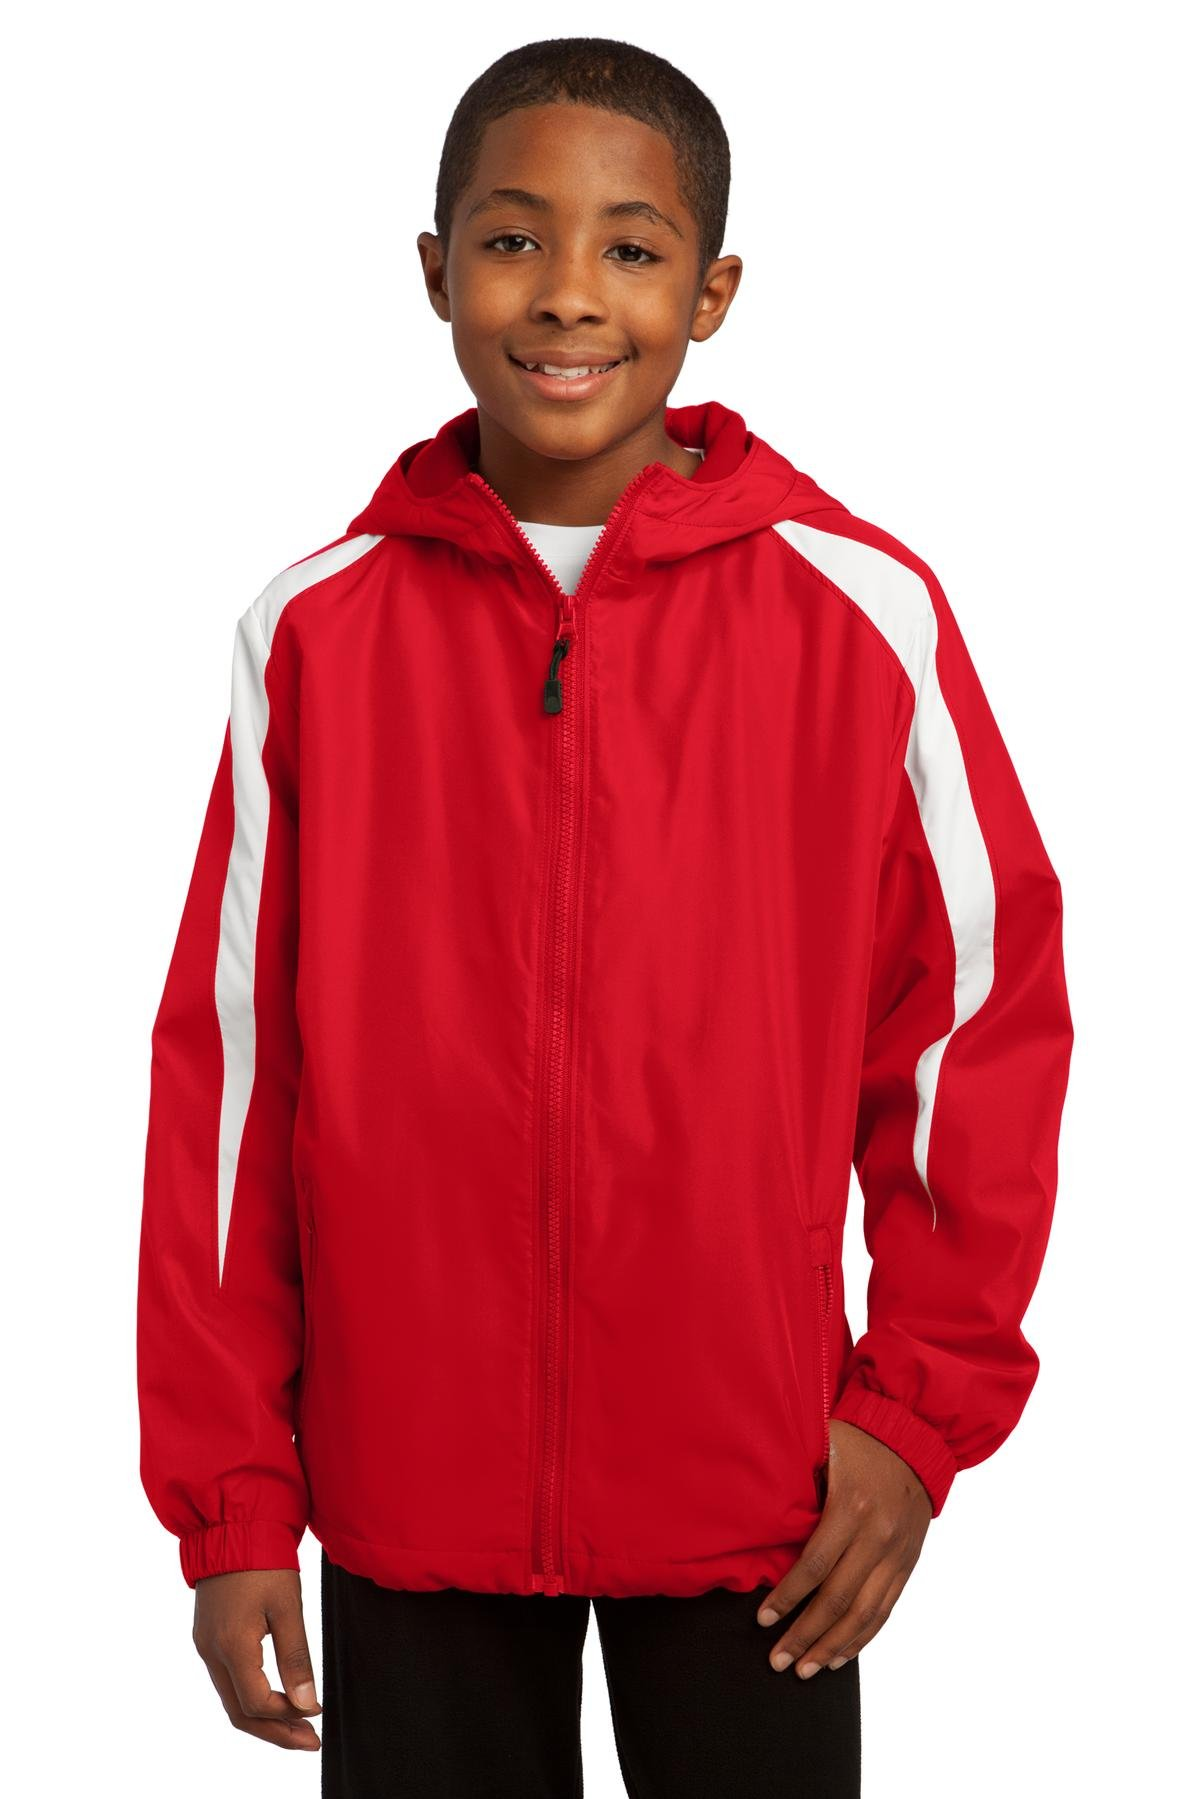 Sport-Tek Youth Fleece-Lined Colorblock Jacket, True Red/White, L by Sport-Tek